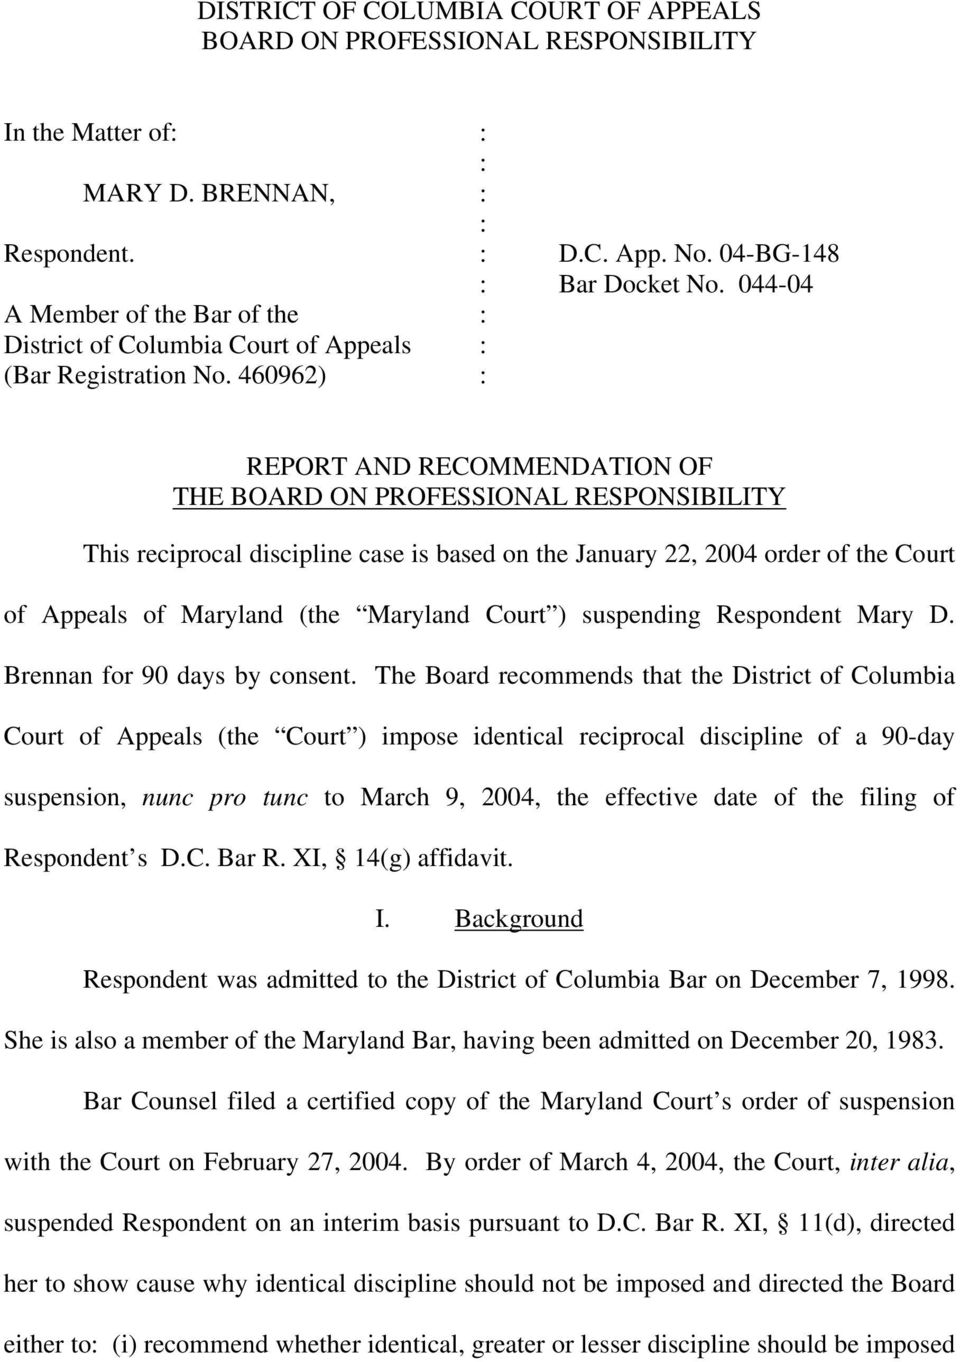 460962) : REPORT AND RECOMMENDATION OF THE BOARD ON PROFESSIONAL RESPONSIBILITY This reciprocal discipline case is based on the January 22, 2004 order of the Court of Appeals of Maryland (the